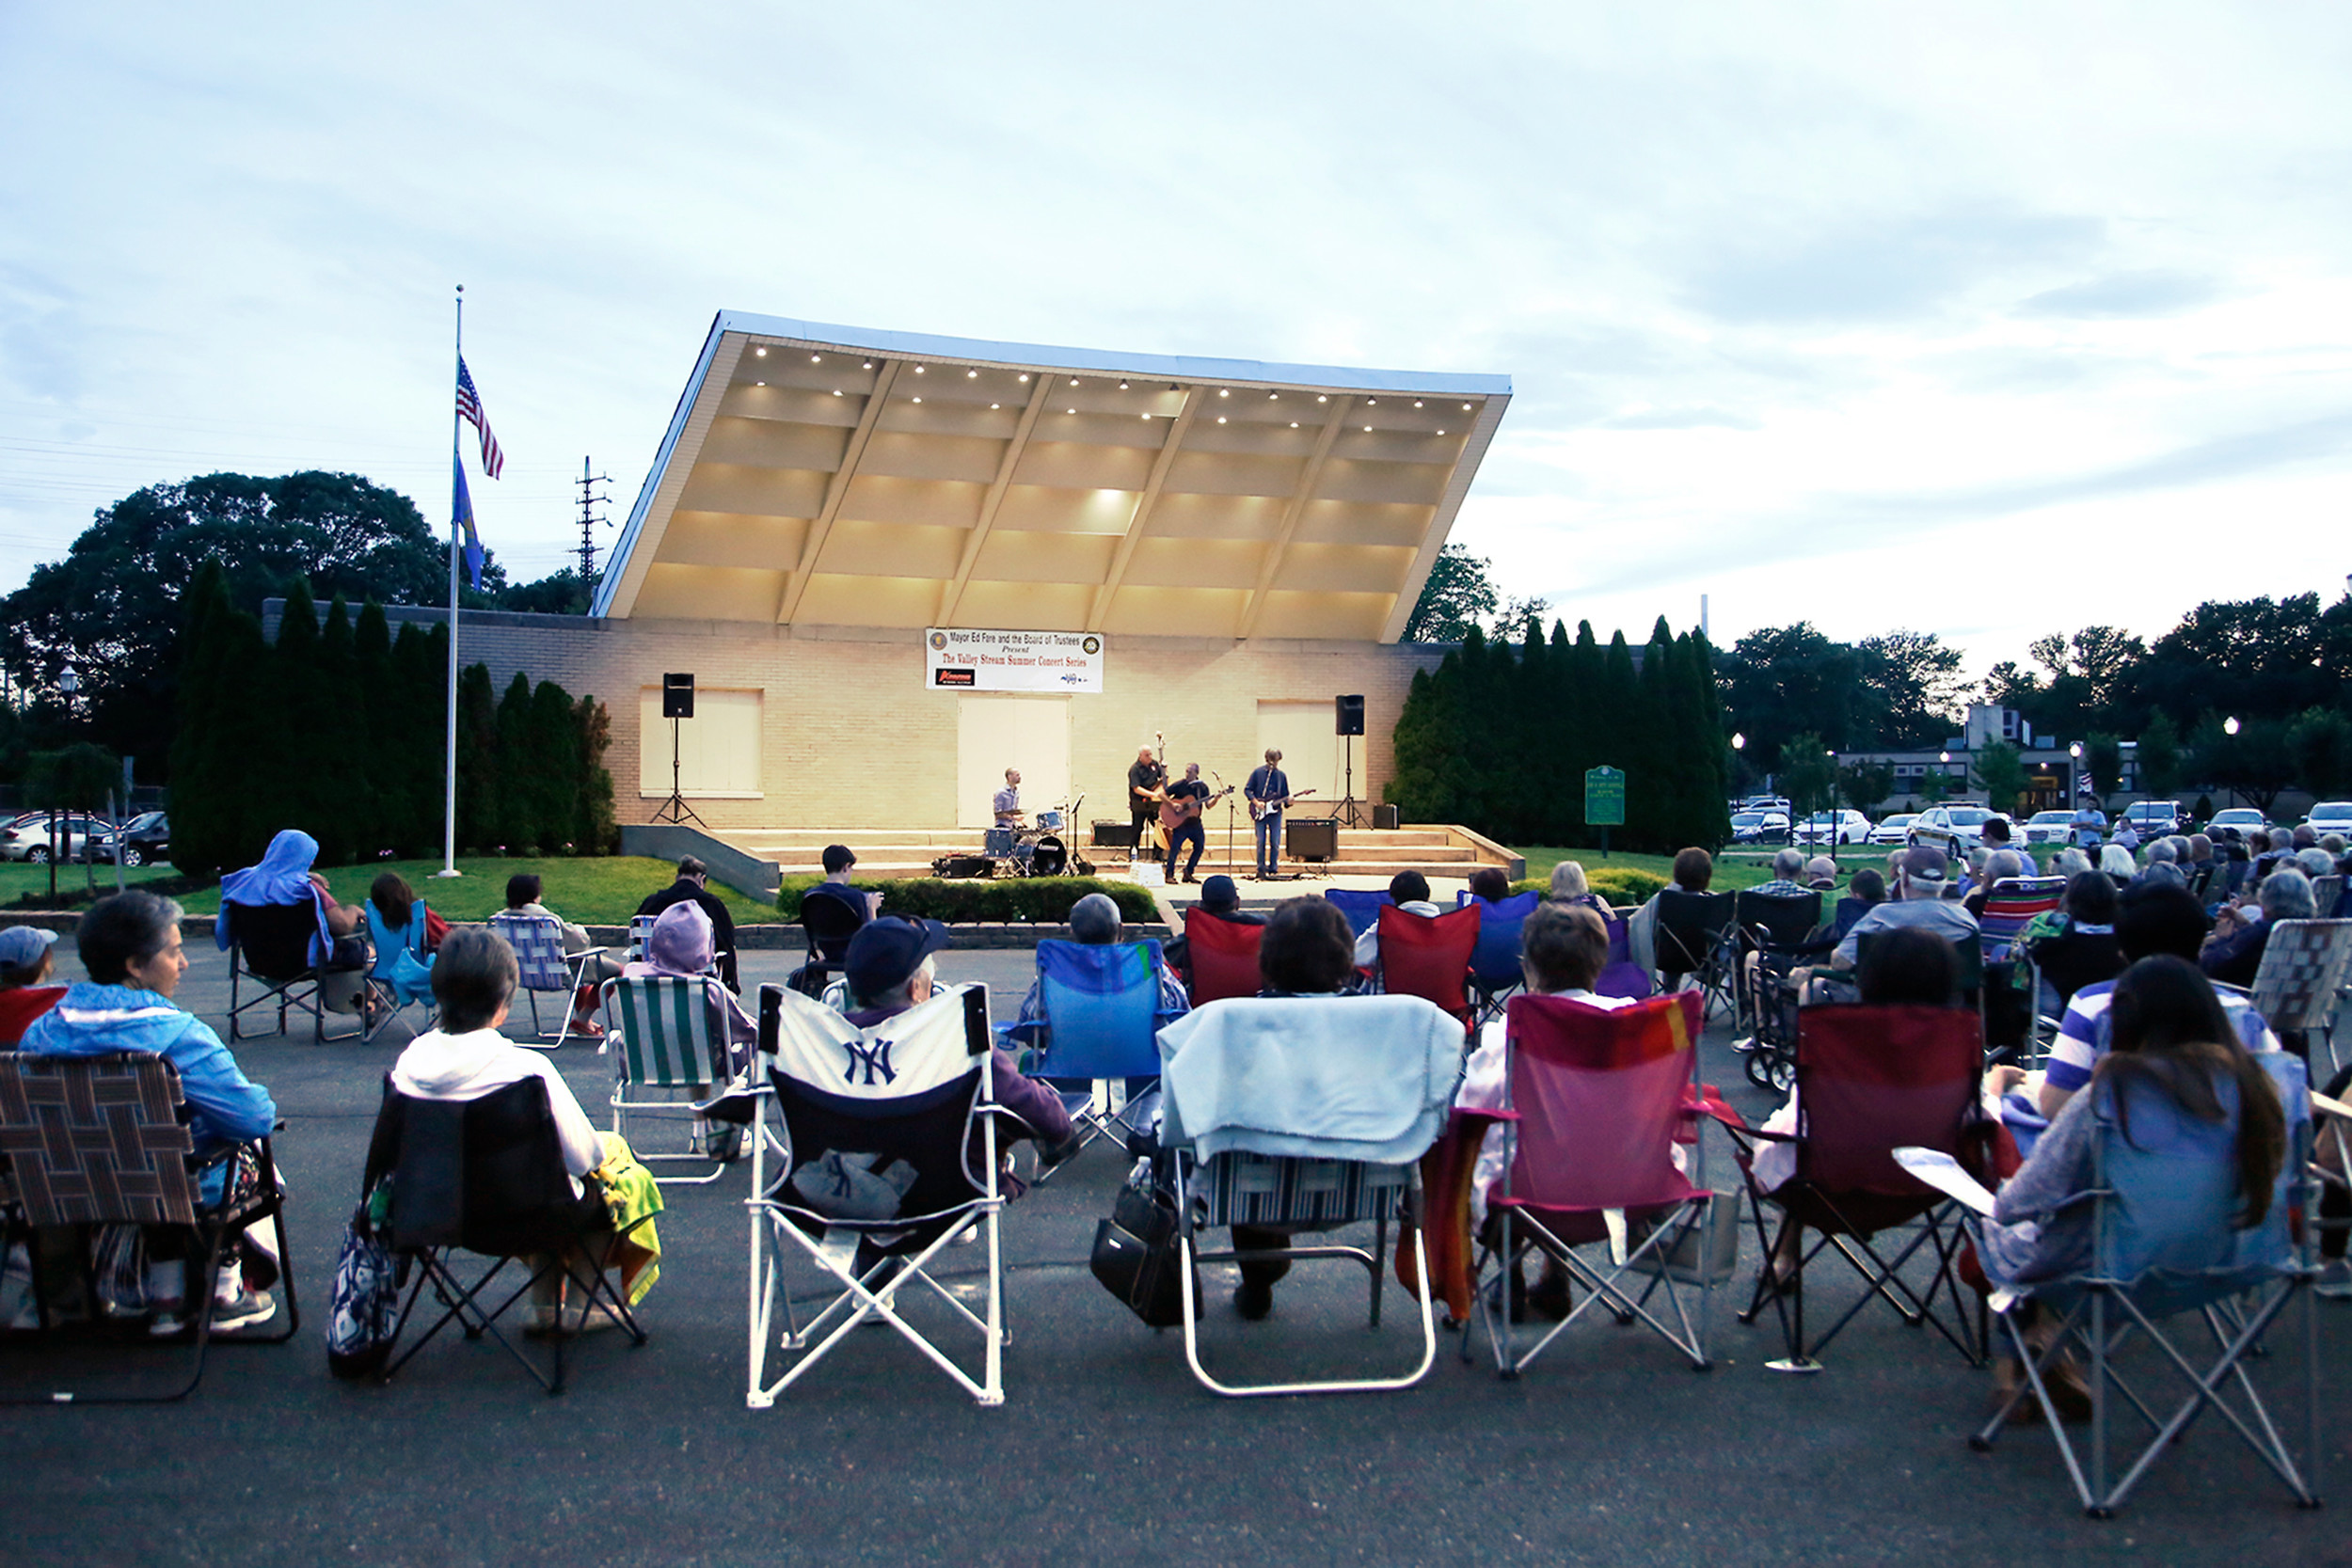 The summer concert series draws crowds from all over